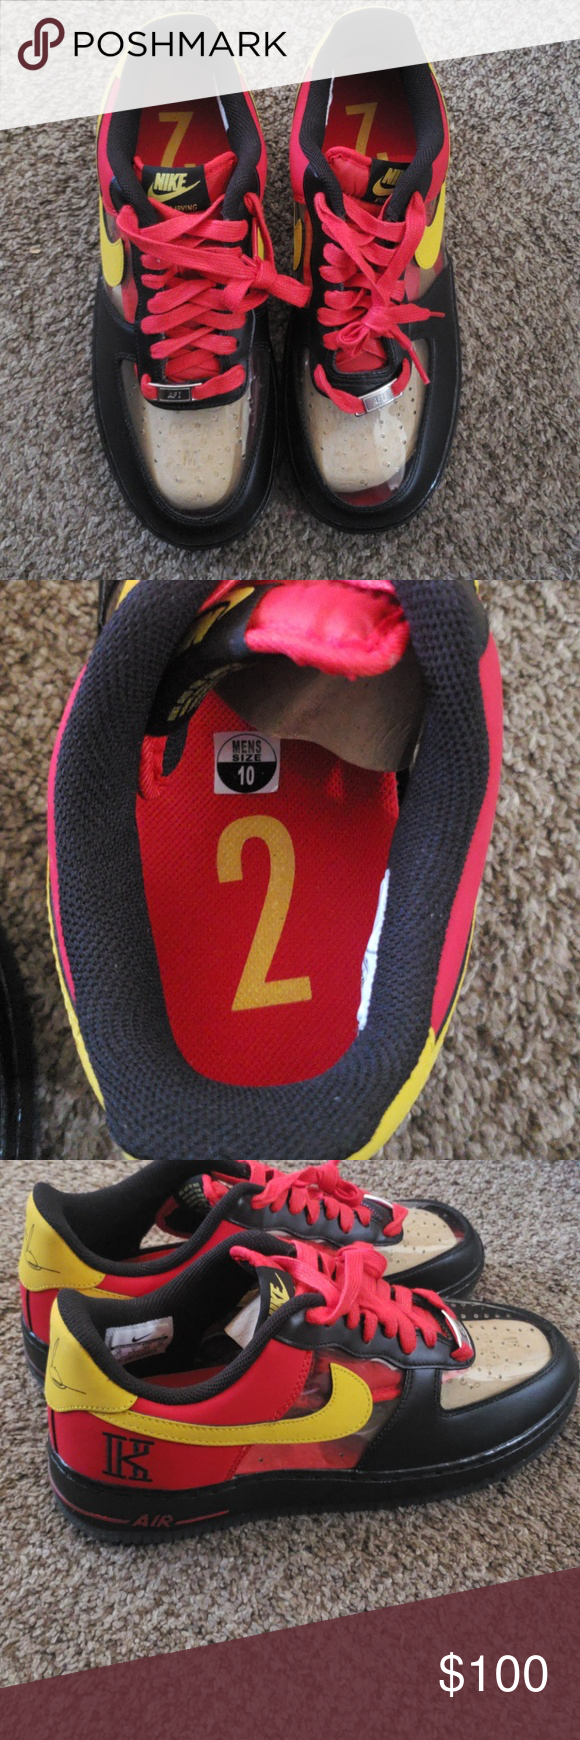 best loved cd5b0 f62da Air Force 1 Low Kyrie Irving Black Red. If you like Air ...